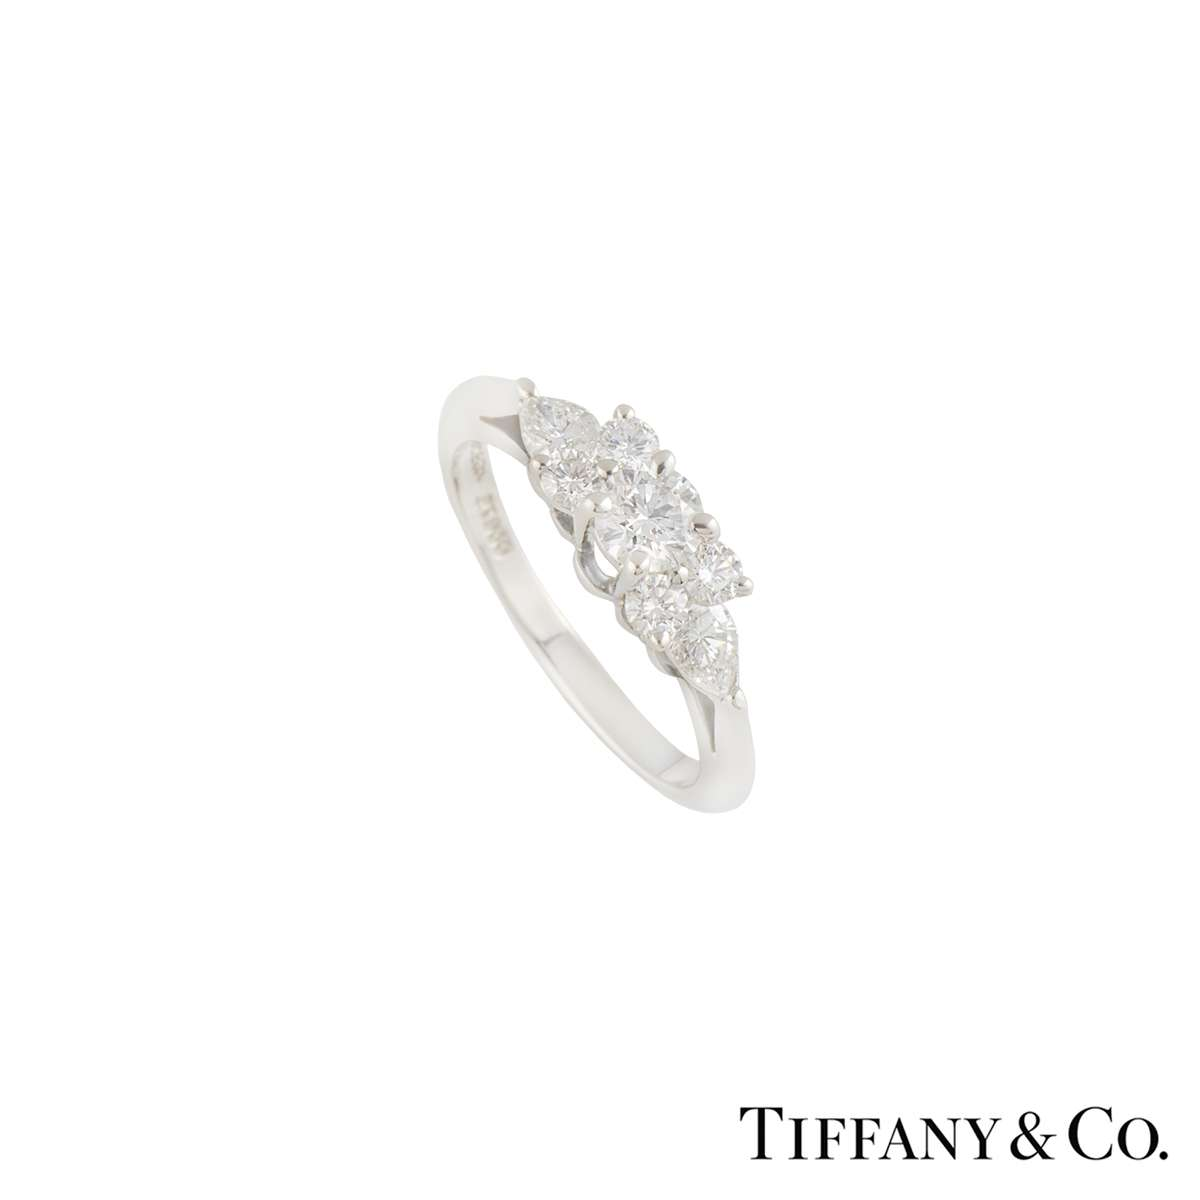 Tiffany & Co. Harmony Diamond Ring